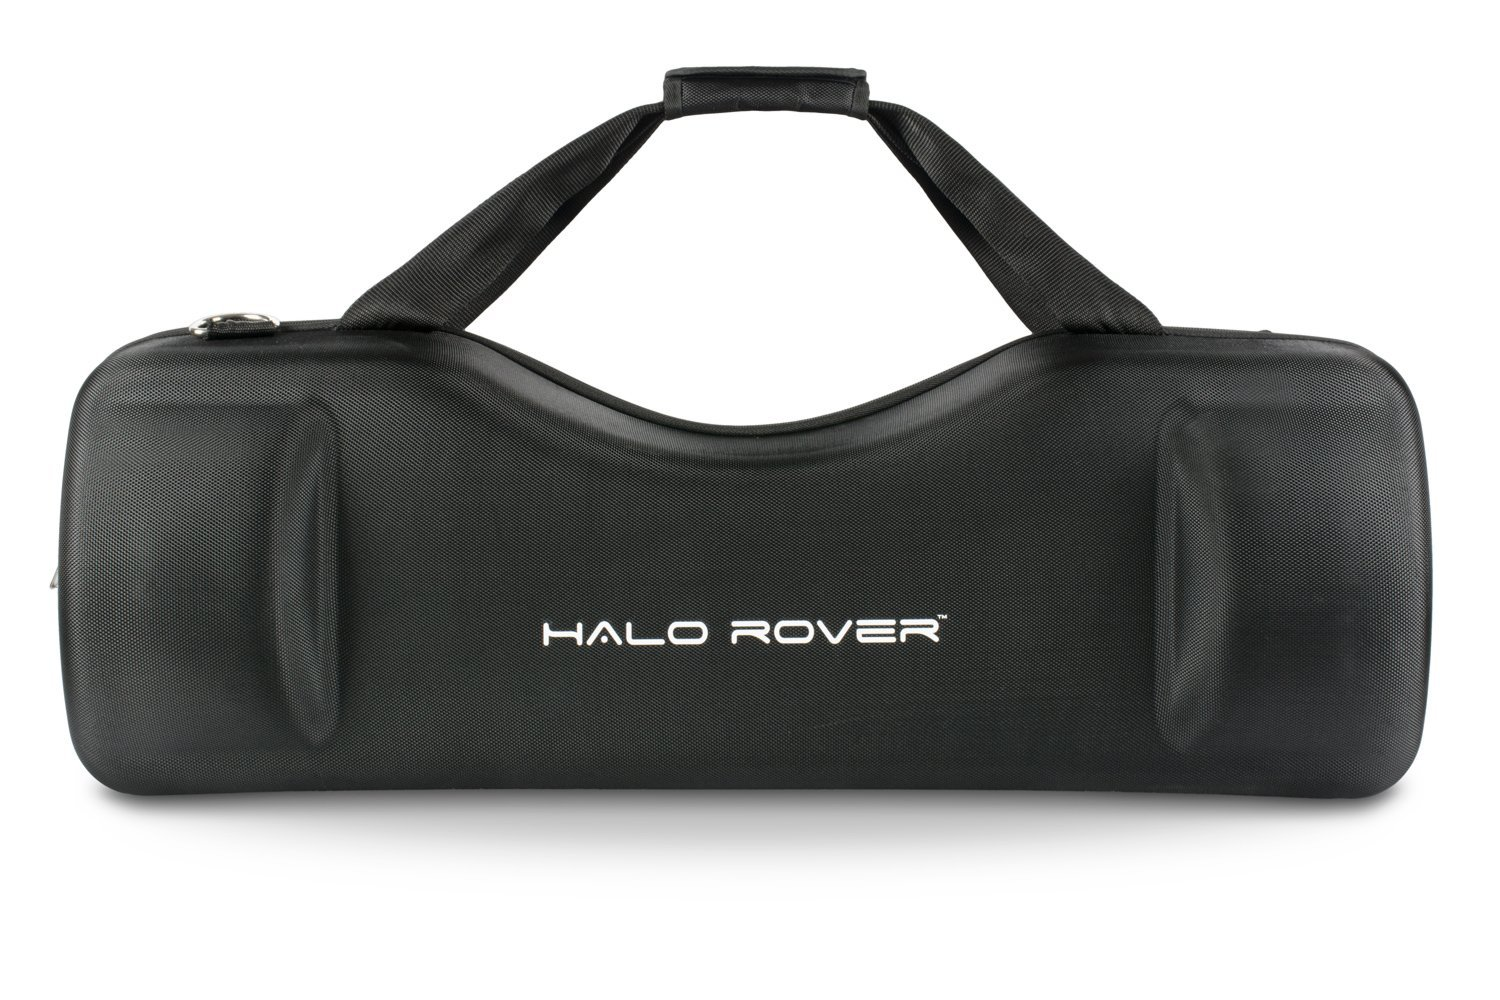 Halo-Rover-Hard-Case